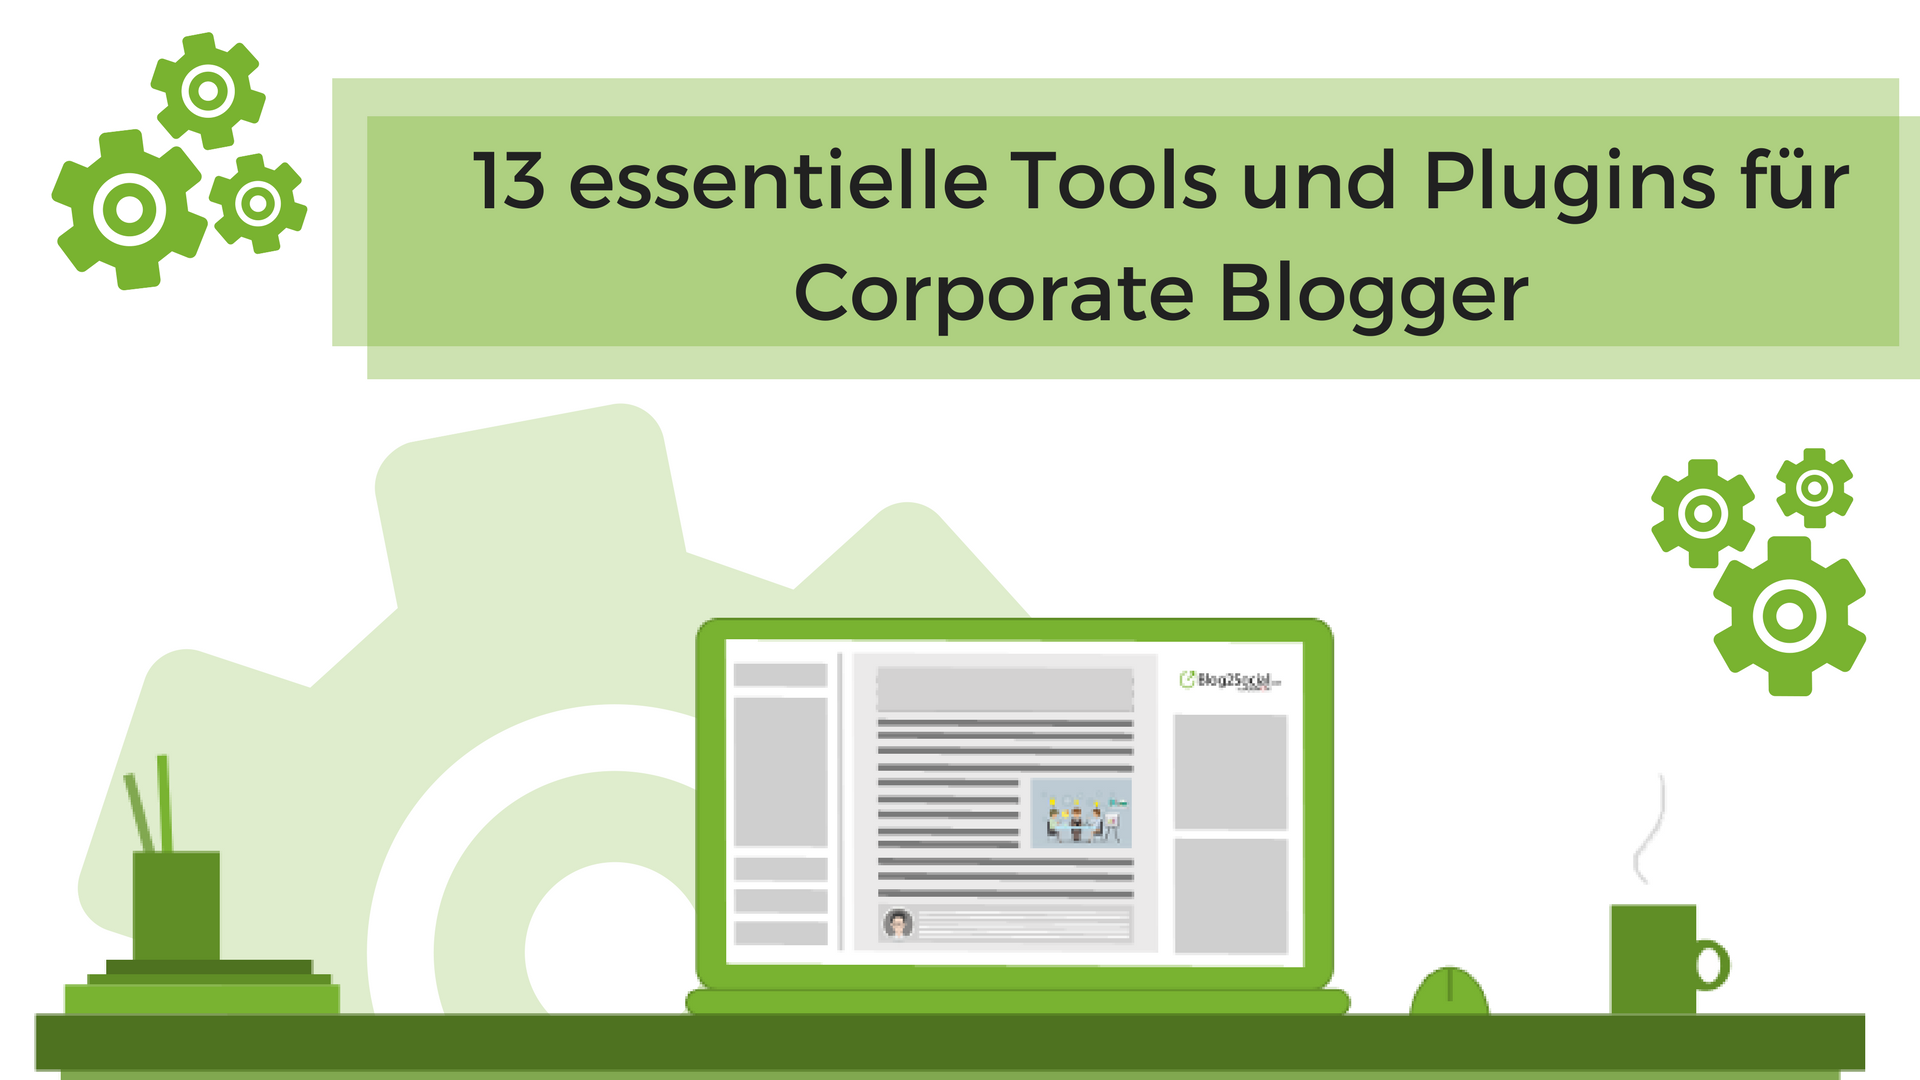 Essentielle Tools und Plugins für Corporate Blogger (1)